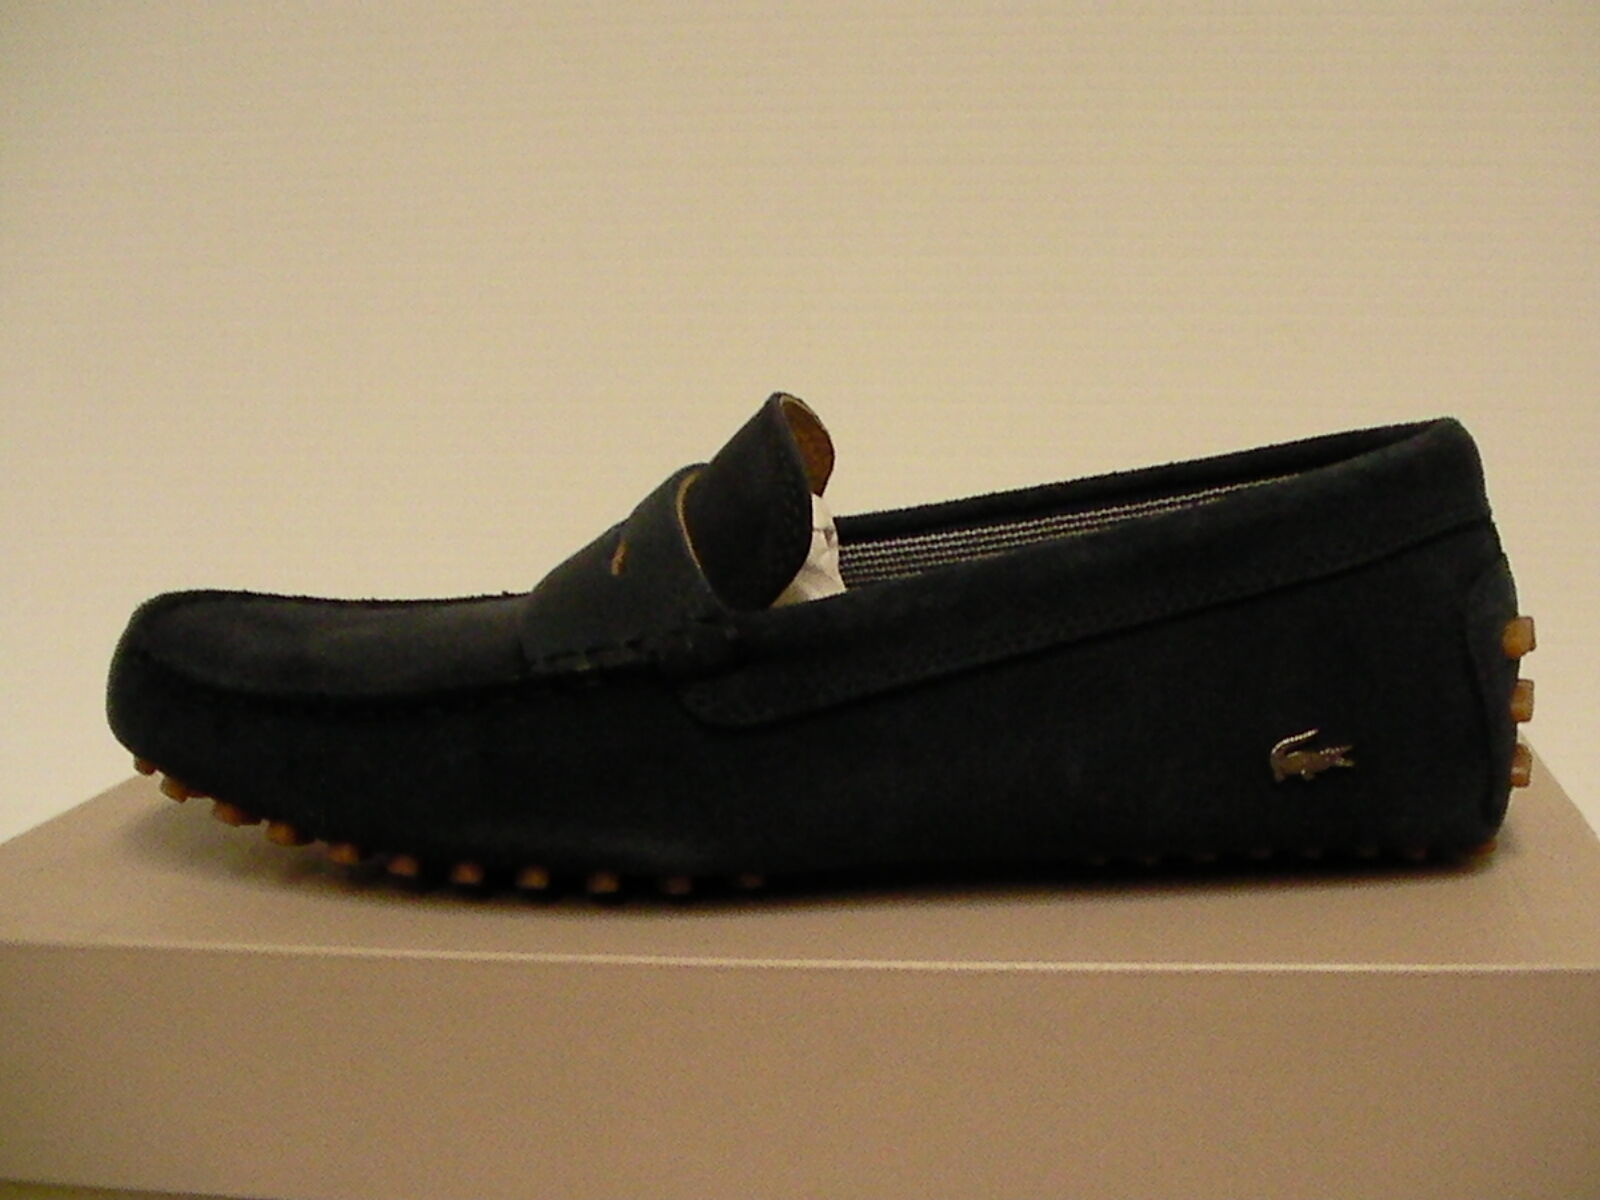 Scarpe casual da uomo  Lacoste uomo casual shoes navy size 8.5 us new with box